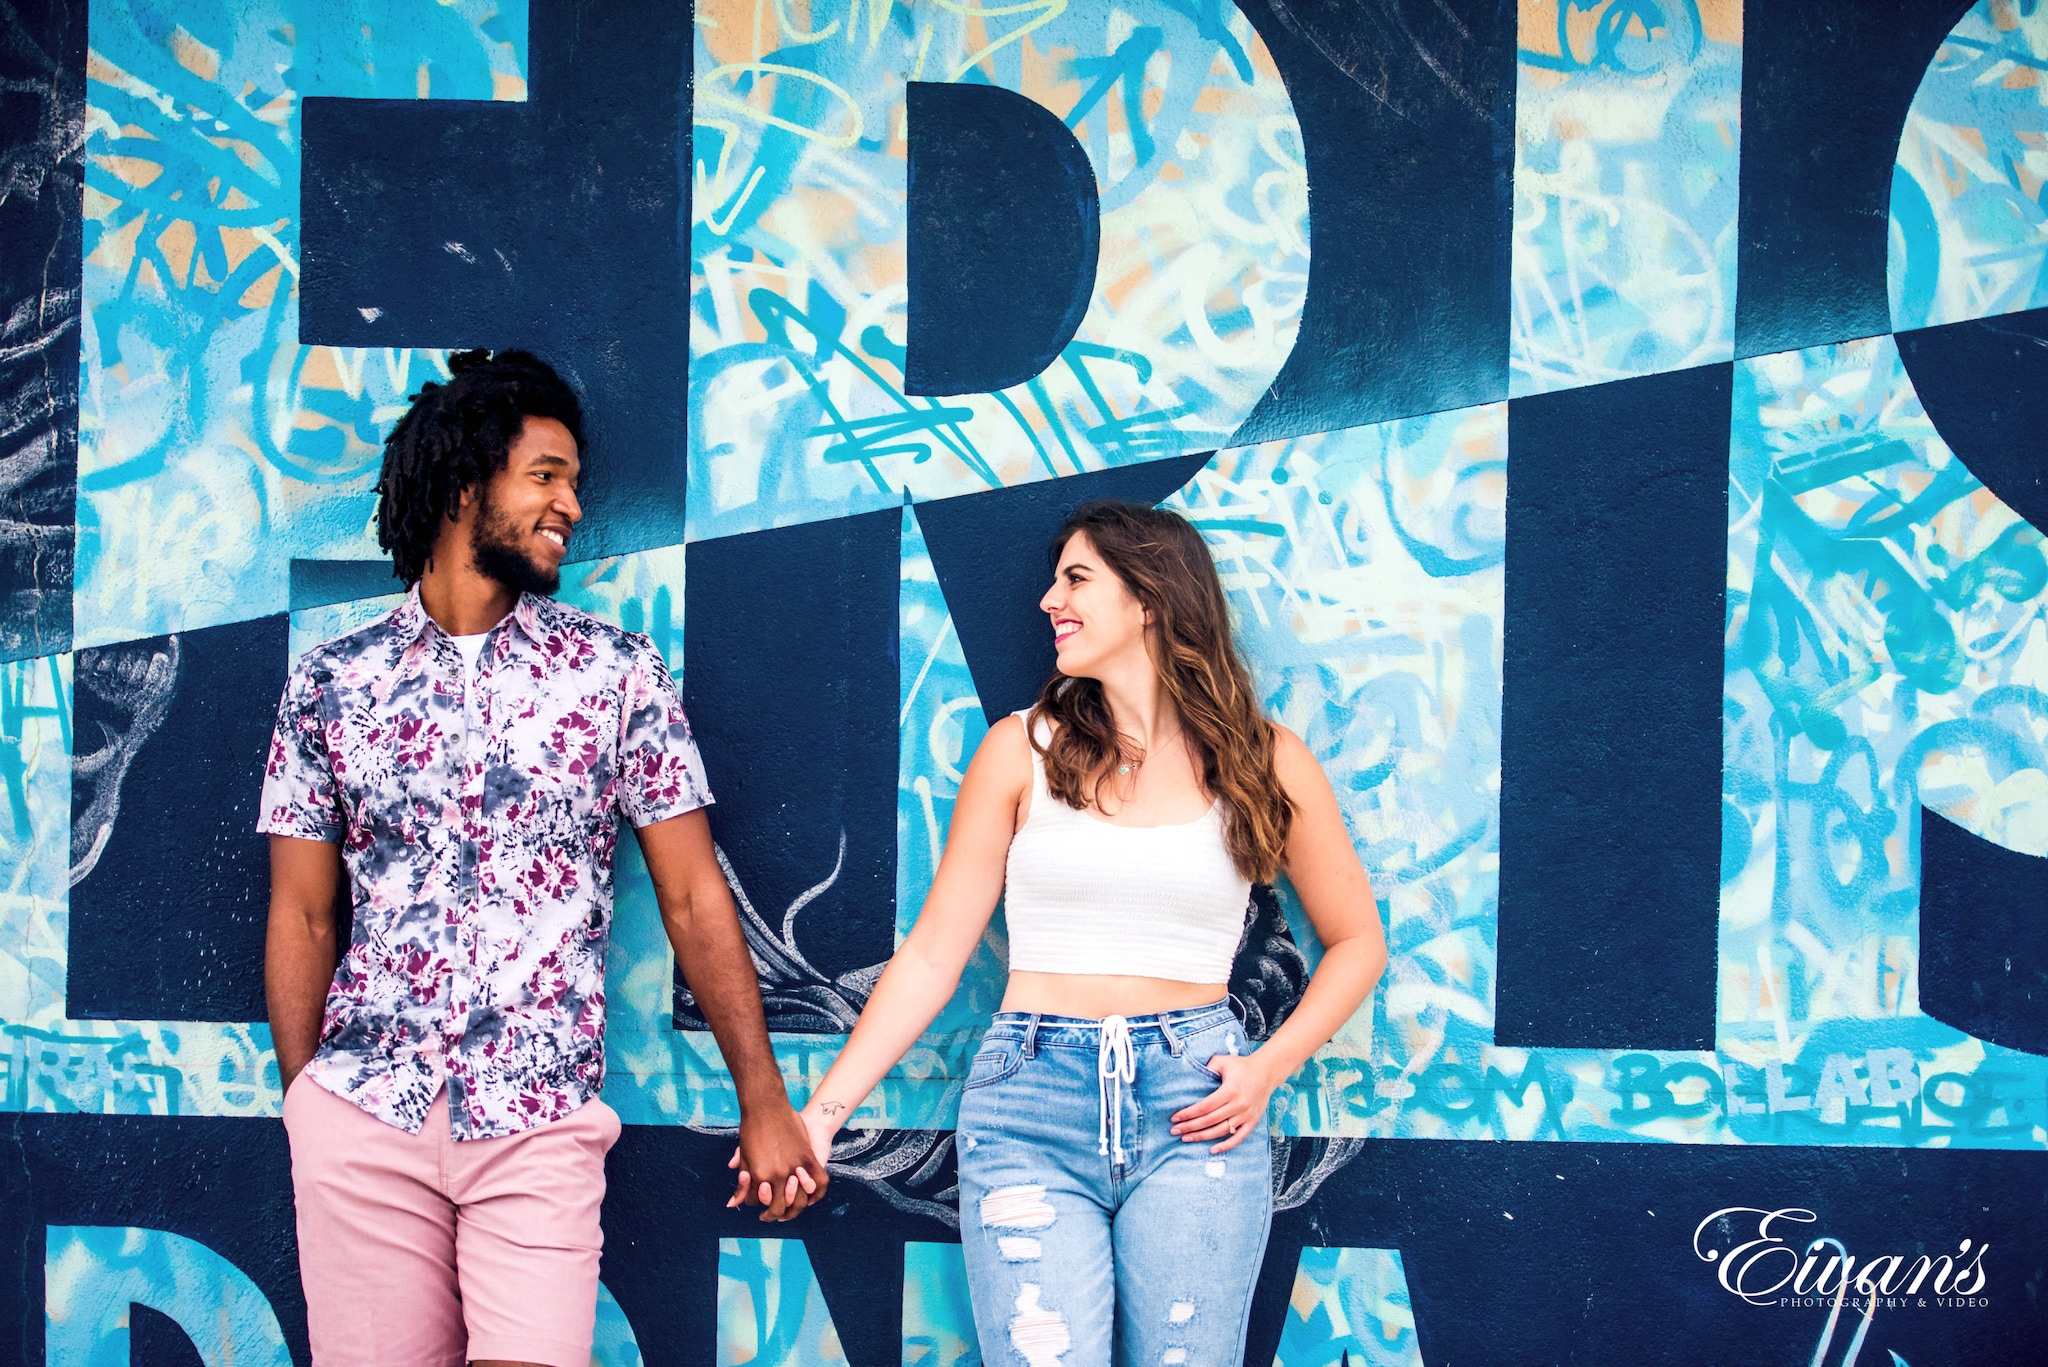 woman in white and pink floral shirt and blue denim jeans standing beside wall with graffiti